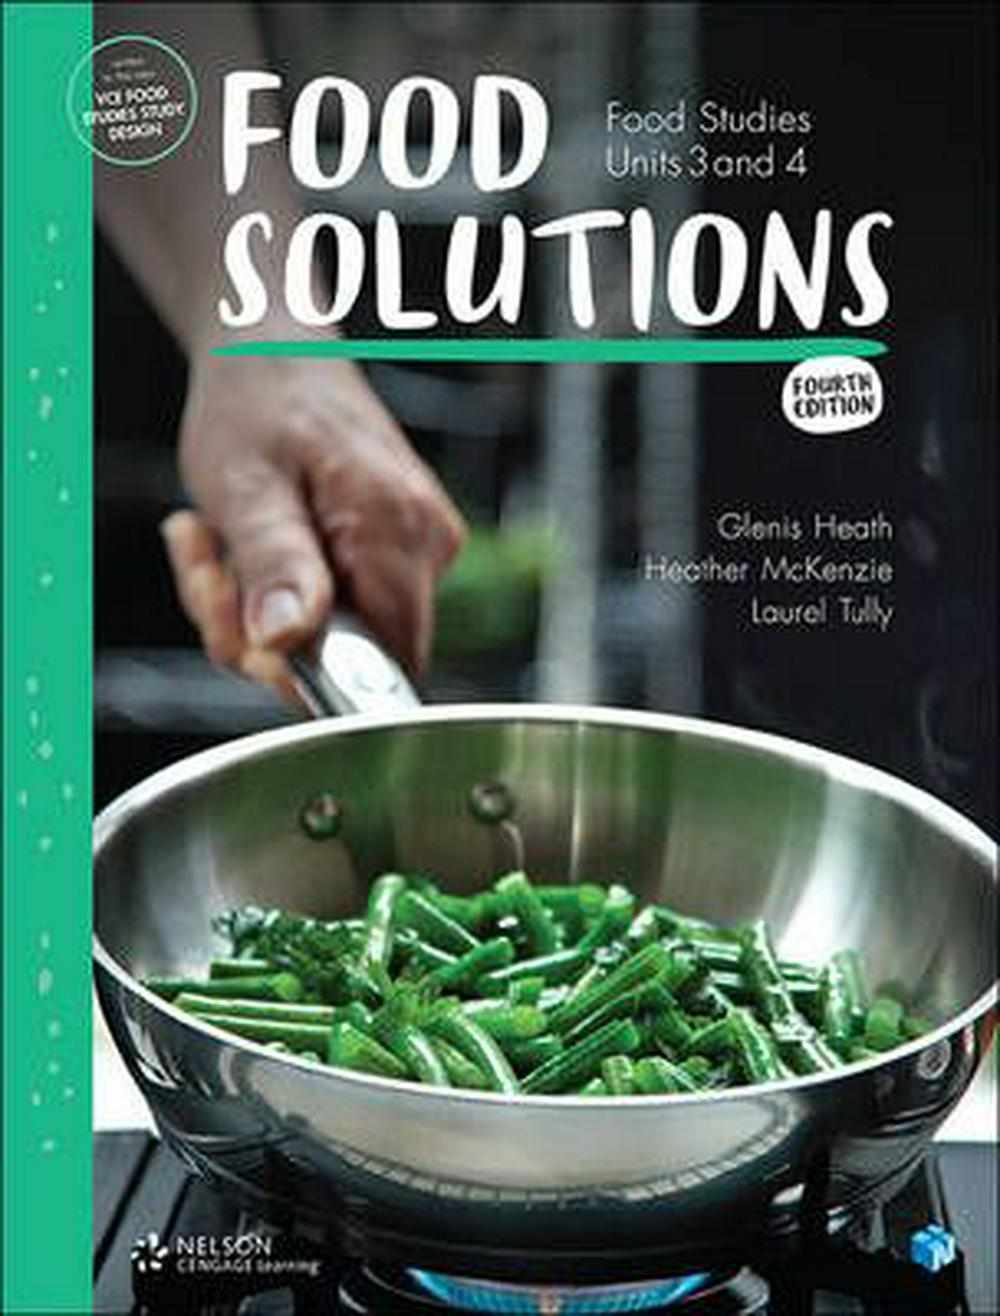 Food Solutions: Food Studies Units 3 & 4 Fourth Edition